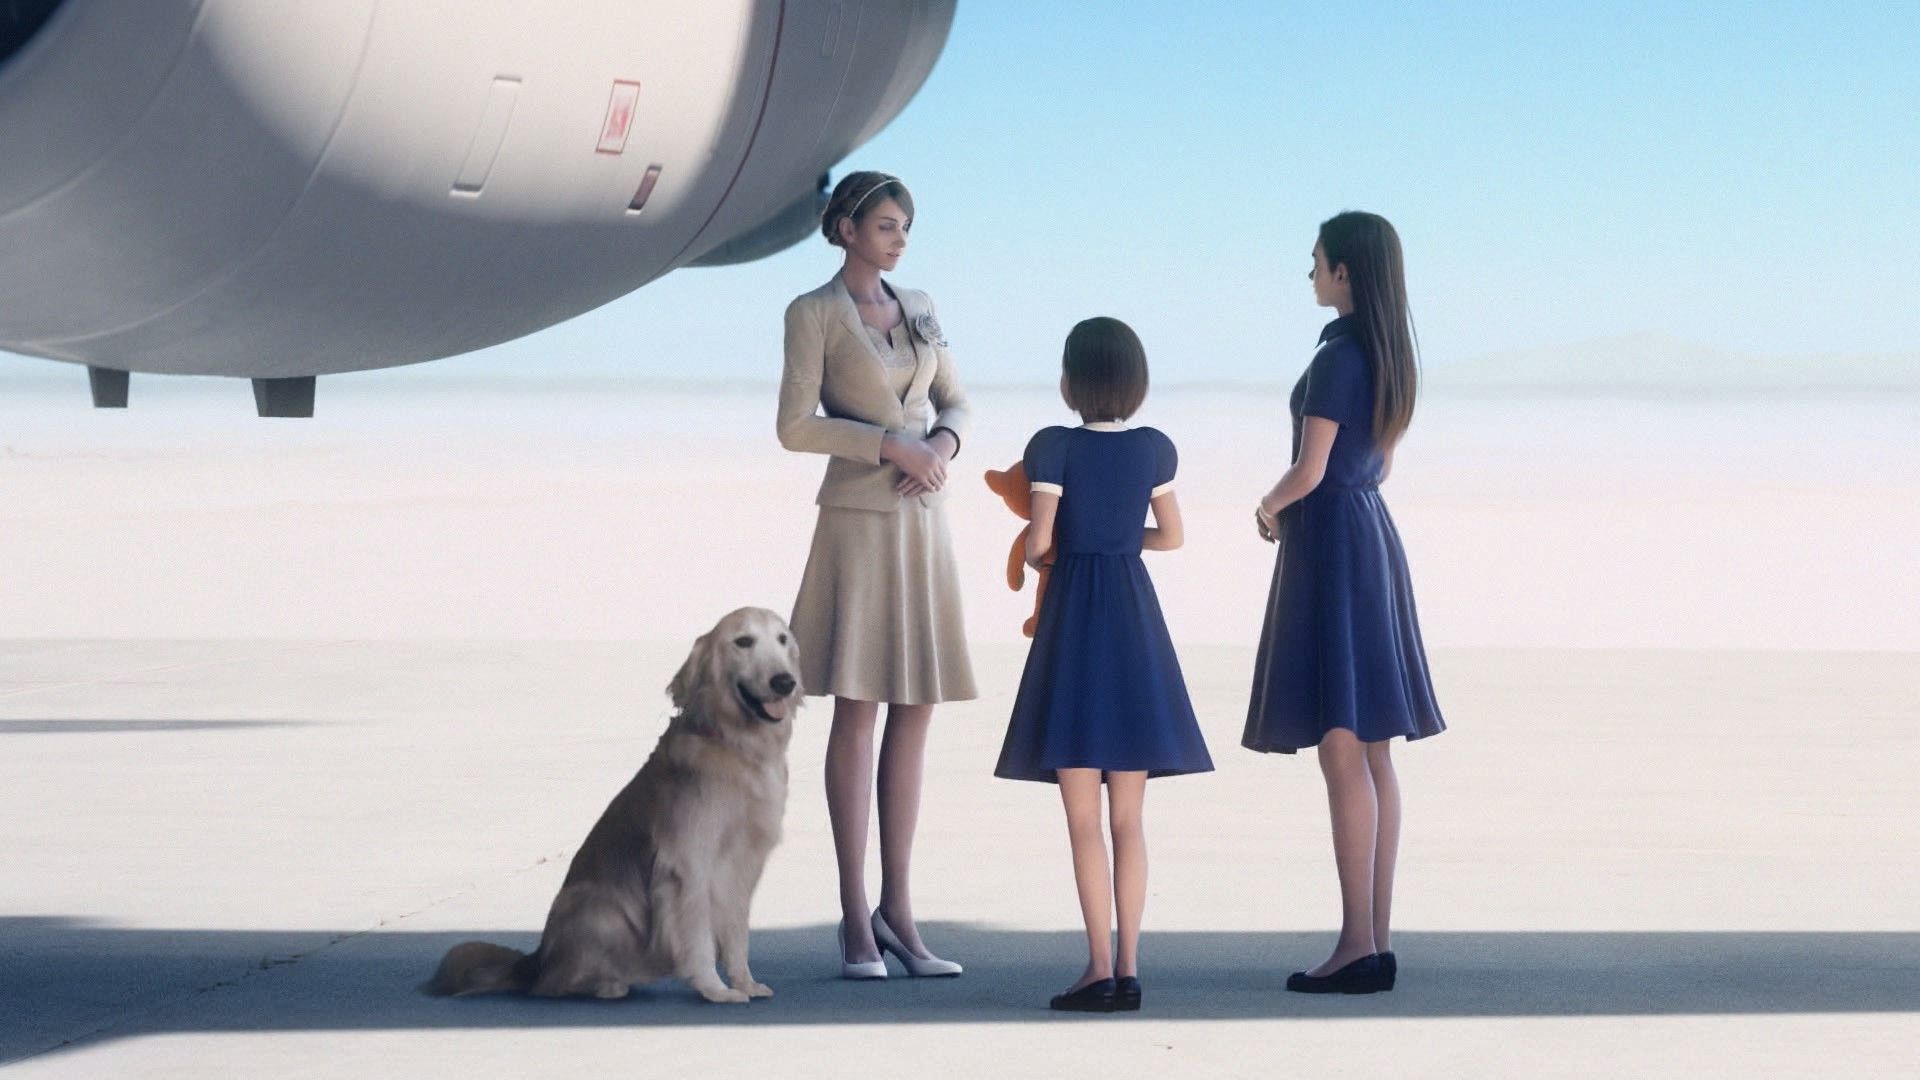 A screenshot from Ace Combat 7 showing three women, one a young girl holding a toy, another perhaps a teenager, and the third an adult woman in a beige skirt two piece. They are standing on a runway in front of the nose of a plane. Next to the adult woman, a golden retriever sits on the ground.